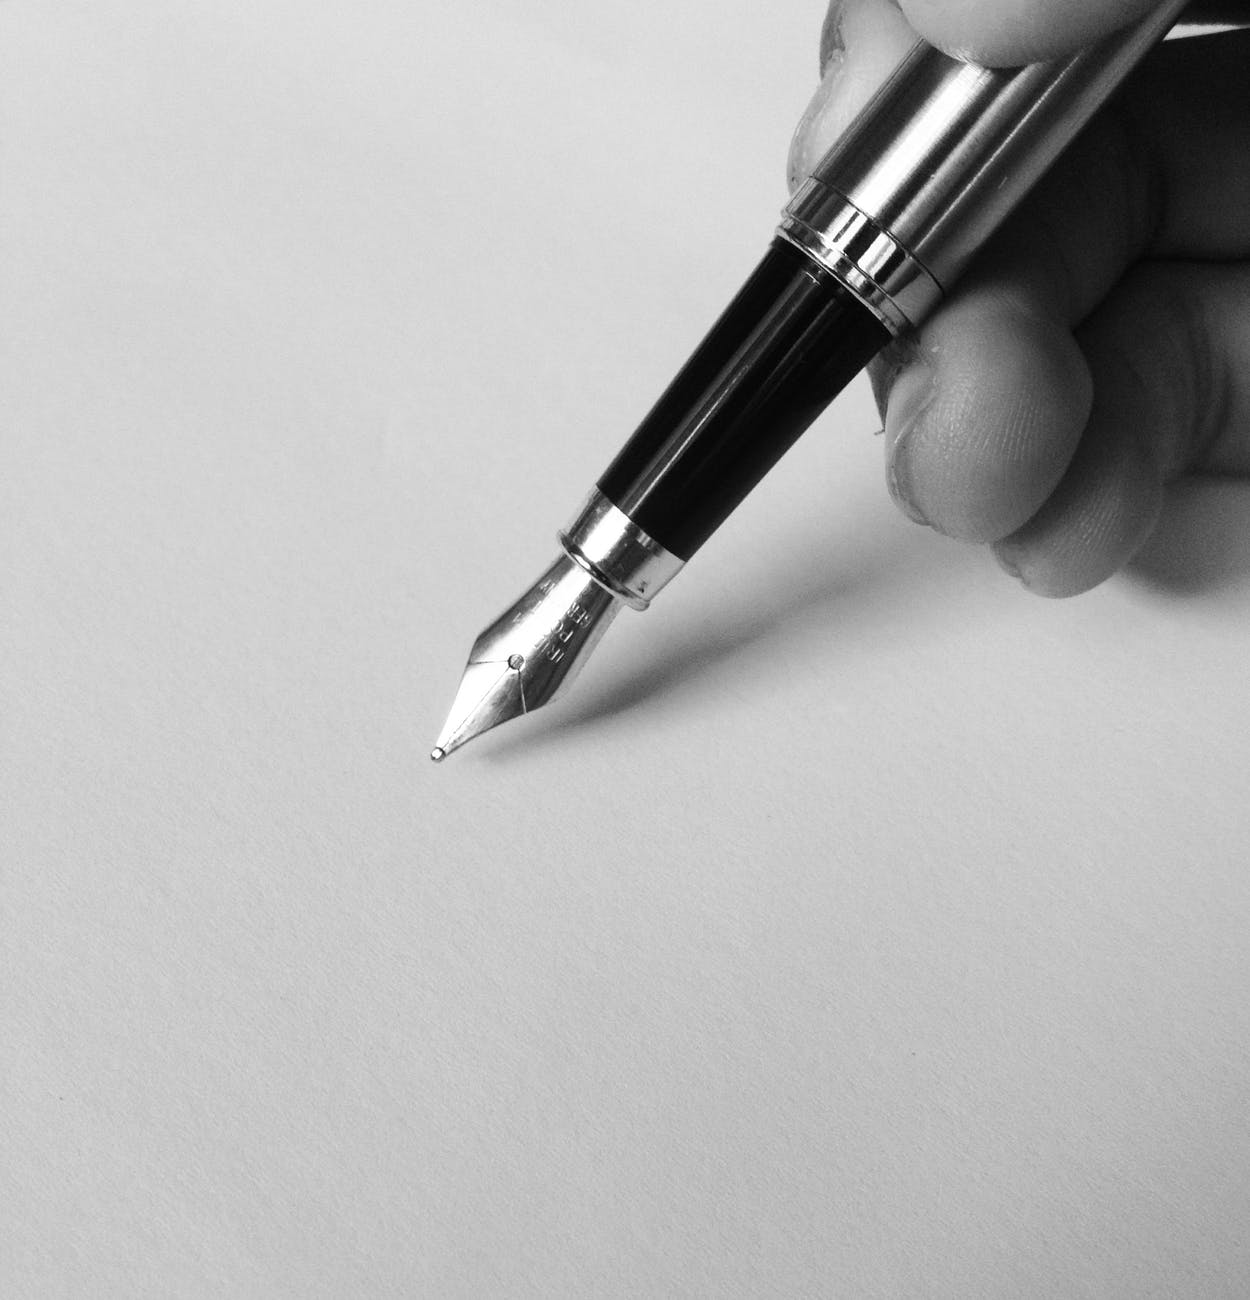 Person Holding Fountain Pen as an author of knowledge and research. image by the PHOTOGRAPHER Janson K., accessed from pexels.com (2020)